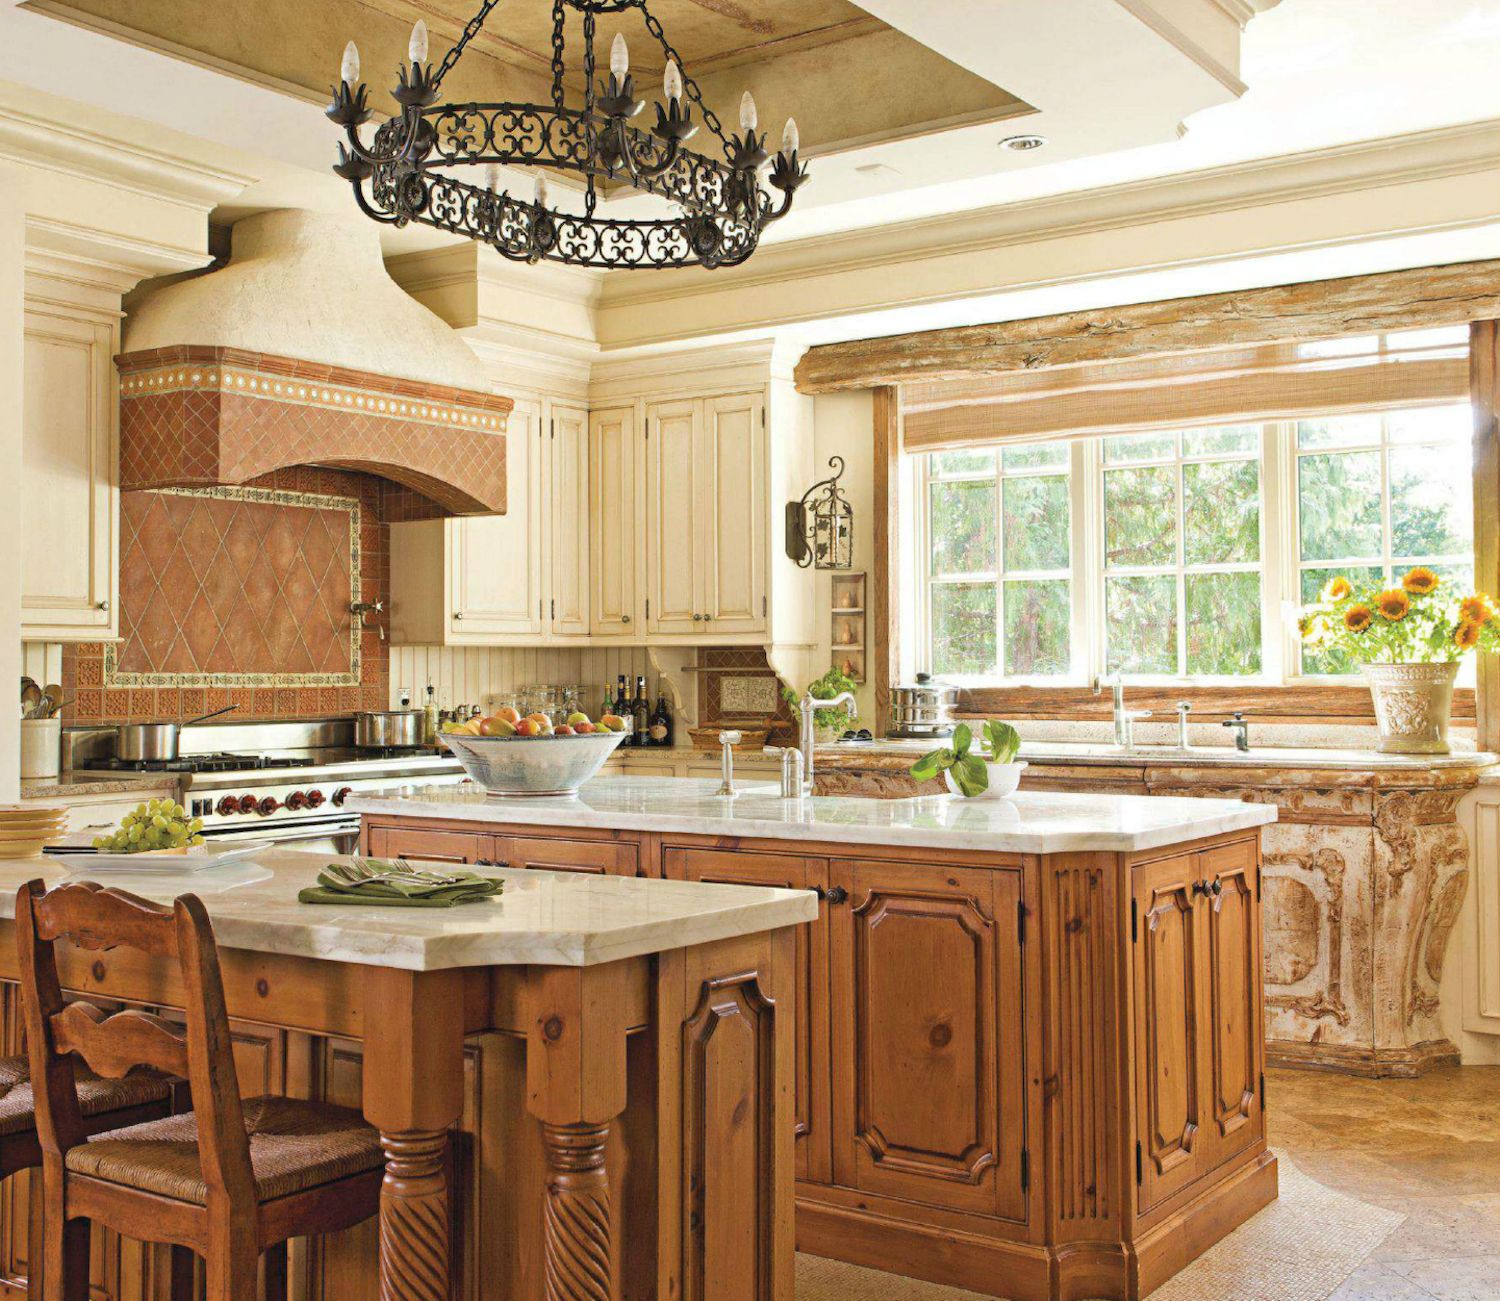 Interesting Facts About Shabby Chic Country Kitchen Design: Beautiful Kitchens With Island